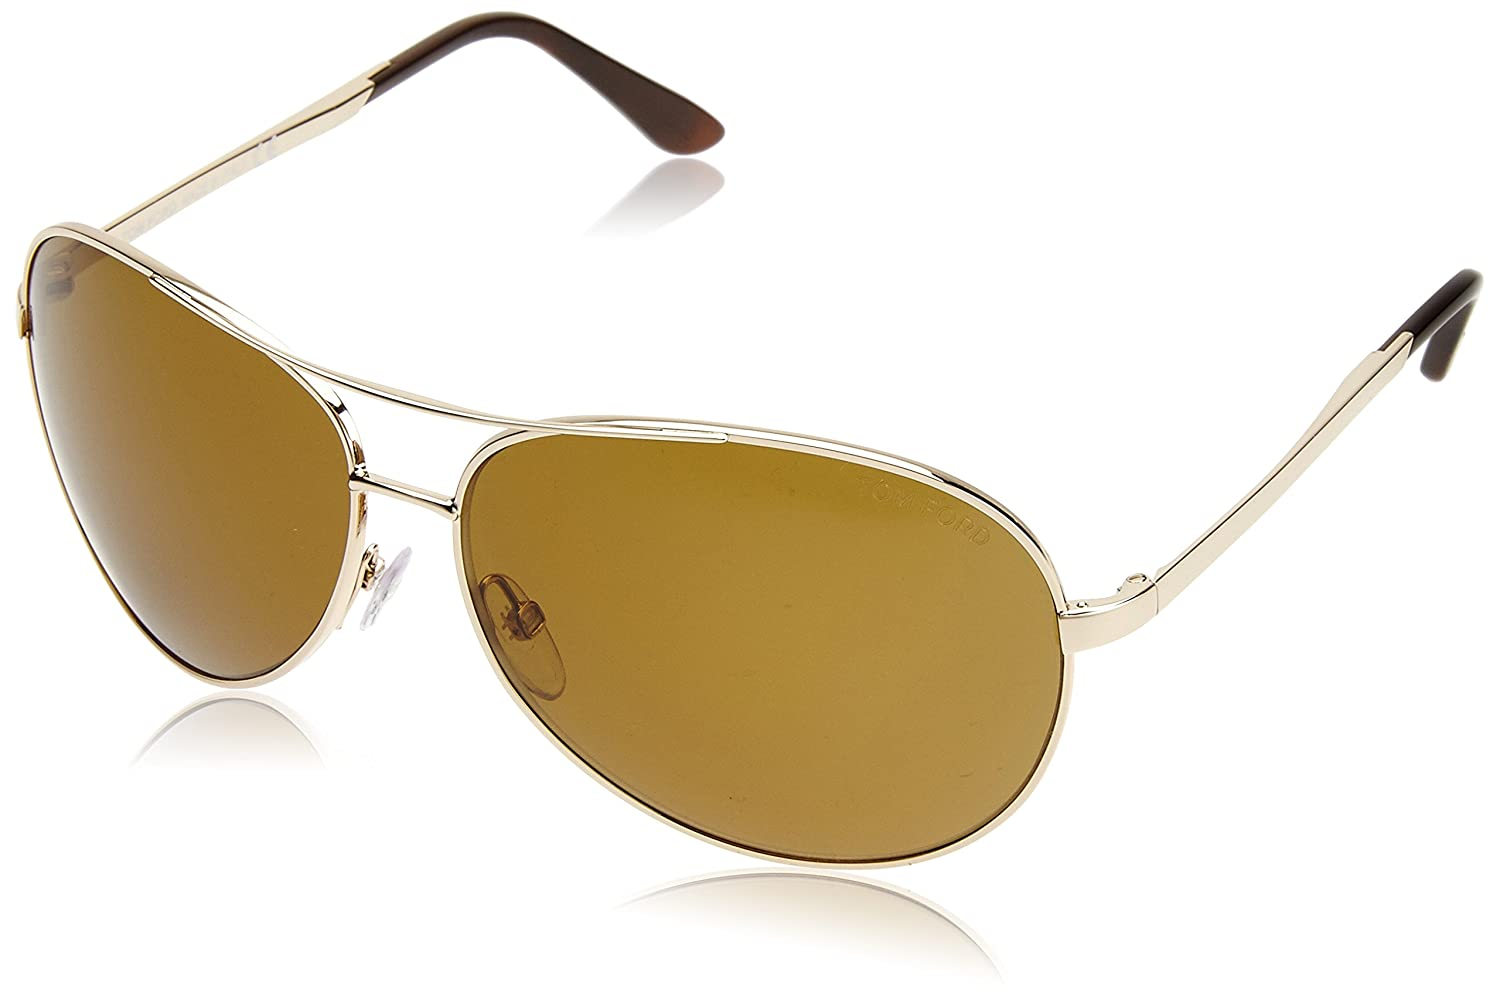 5a85df8af8 Amazon.com  Tom Ford FT0035 Sunglasses 28H Shiny Rose Gold  Clothing